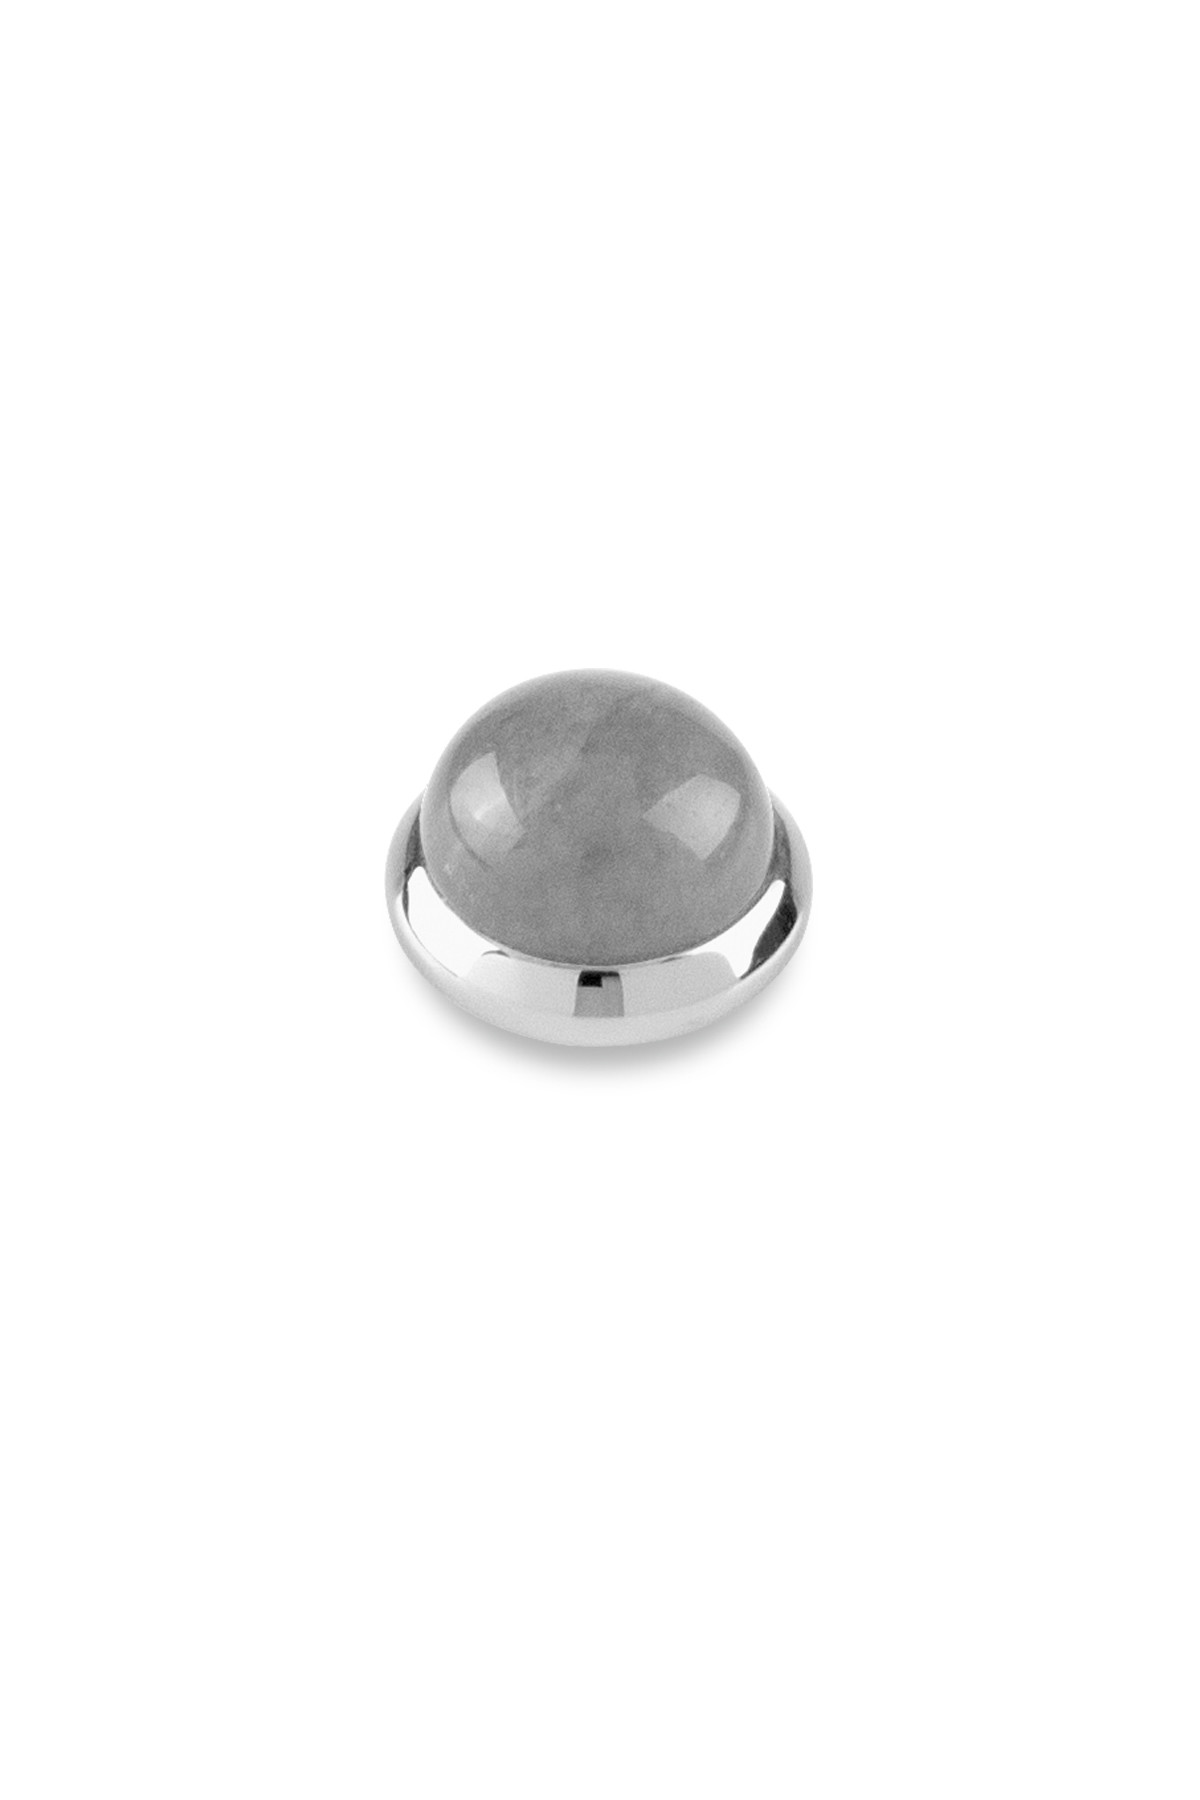 Image of DYRBERG/KERN BUD TOPPING 351359 (Silver, Grey, ONESIZE)